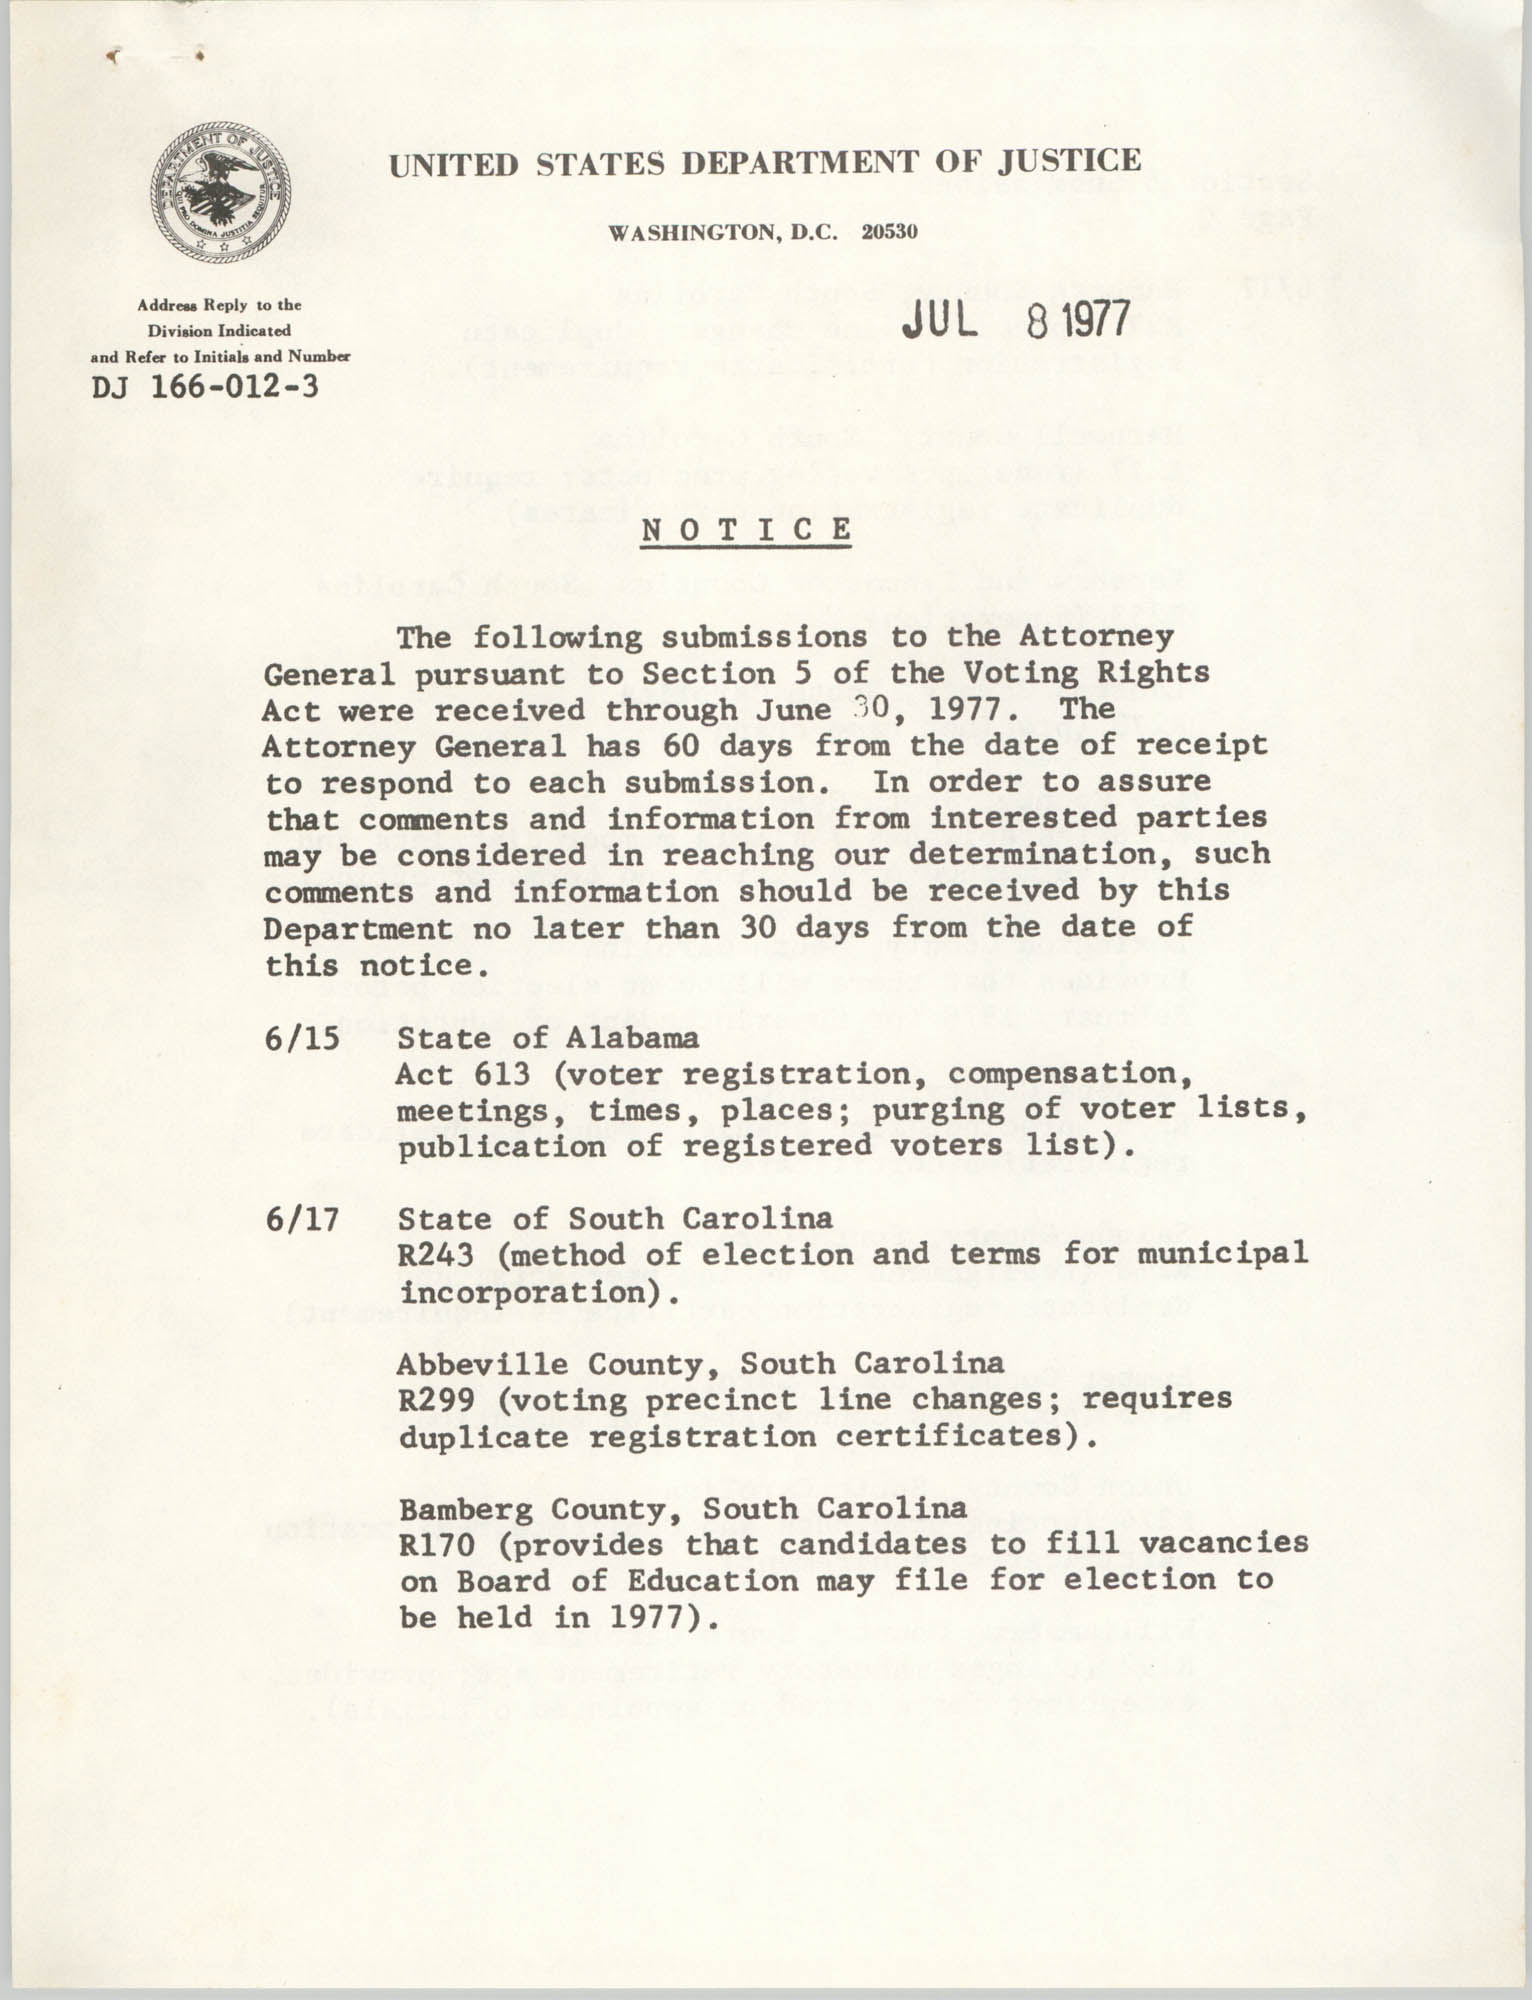 United States Department of Justice Notice, July 8, 1977